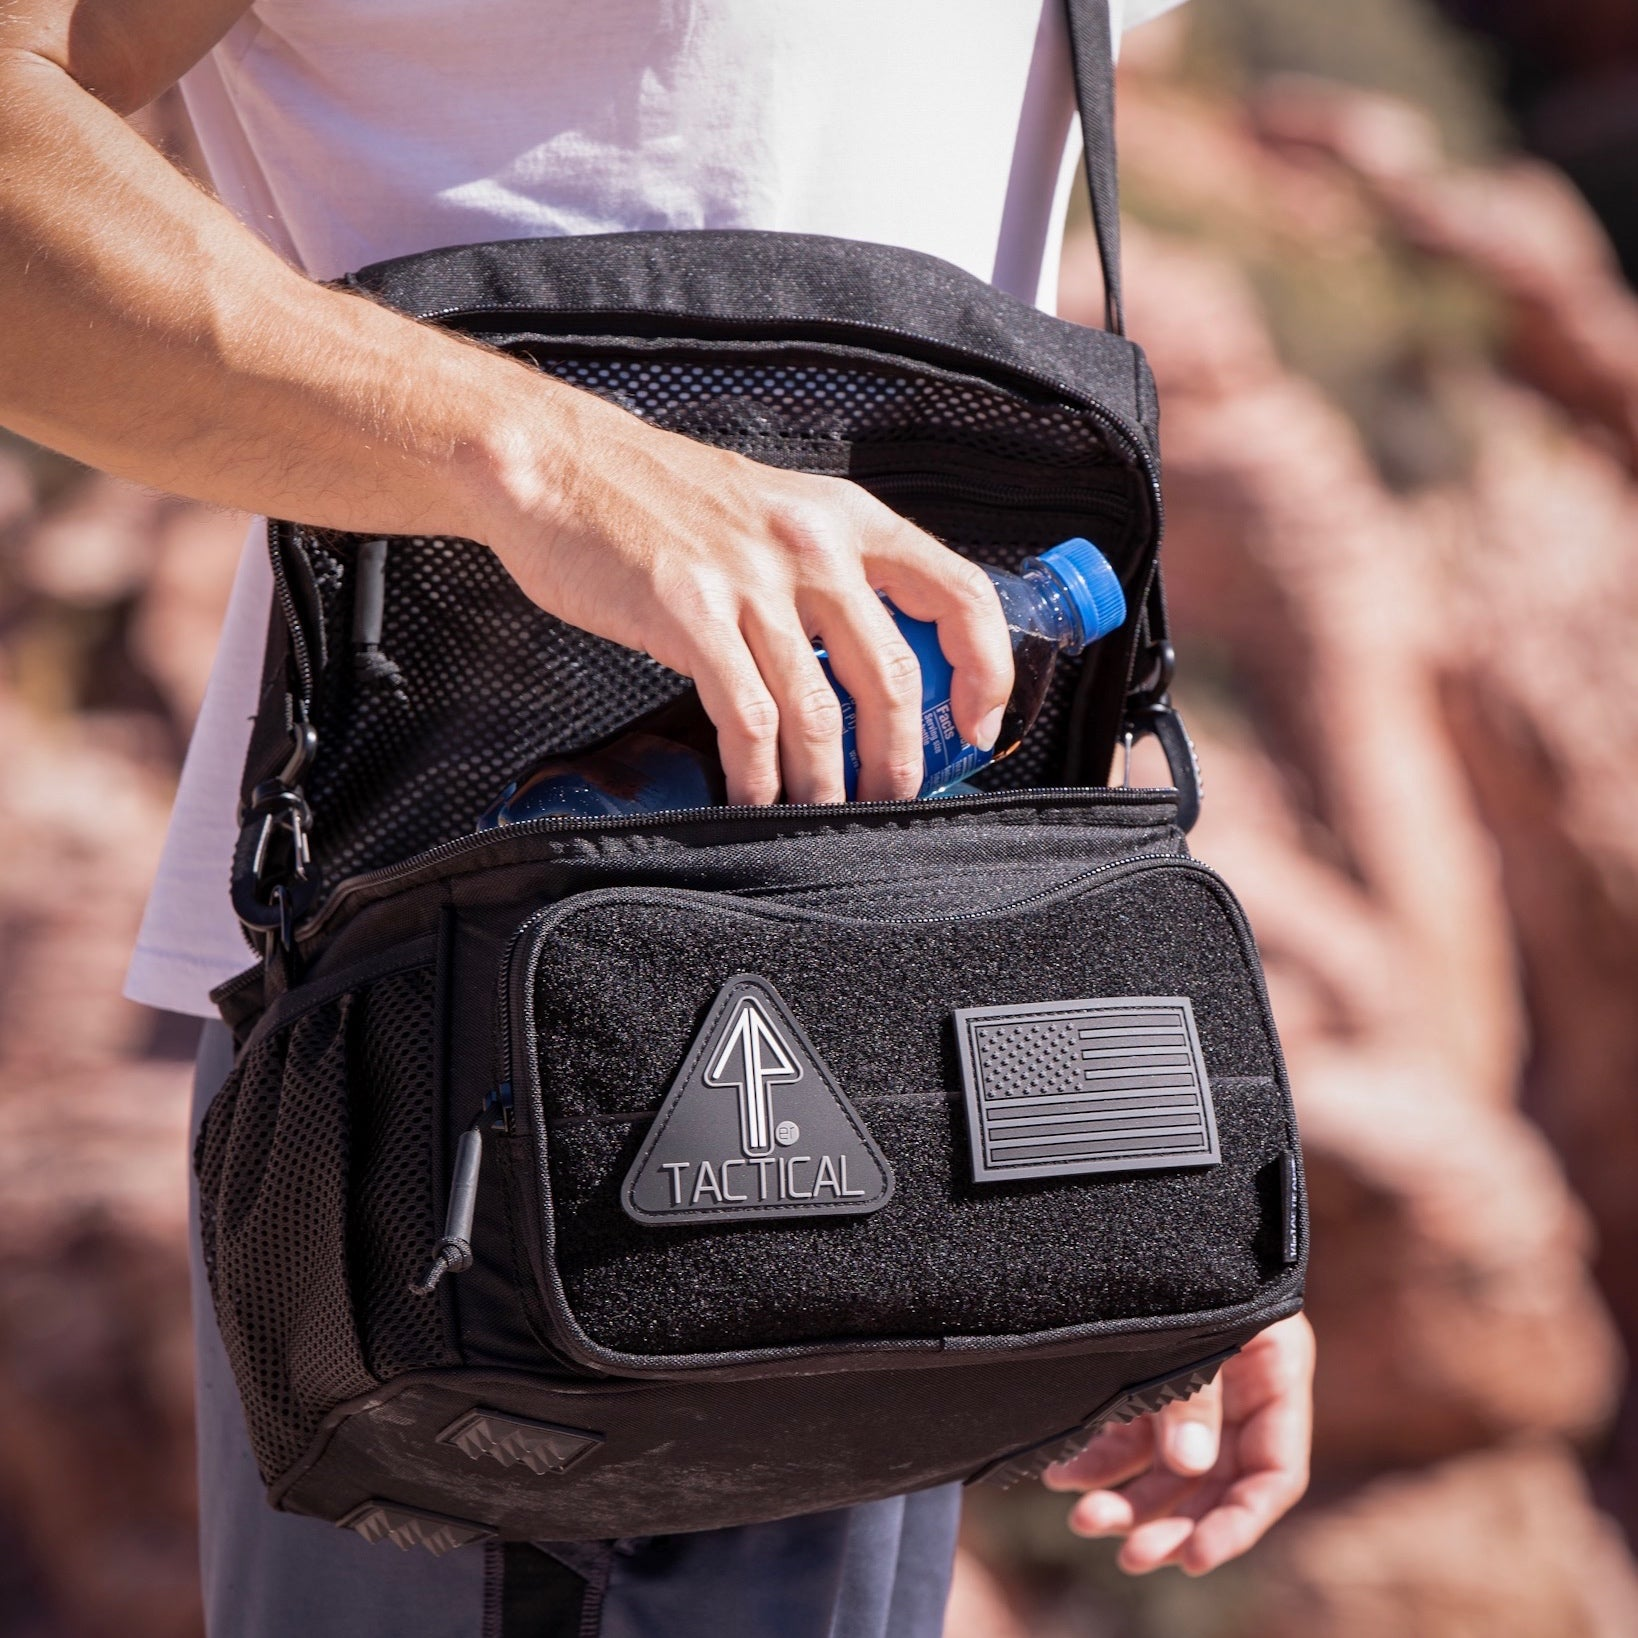 The 14er Tactical Backpack is decorated with morale patches.